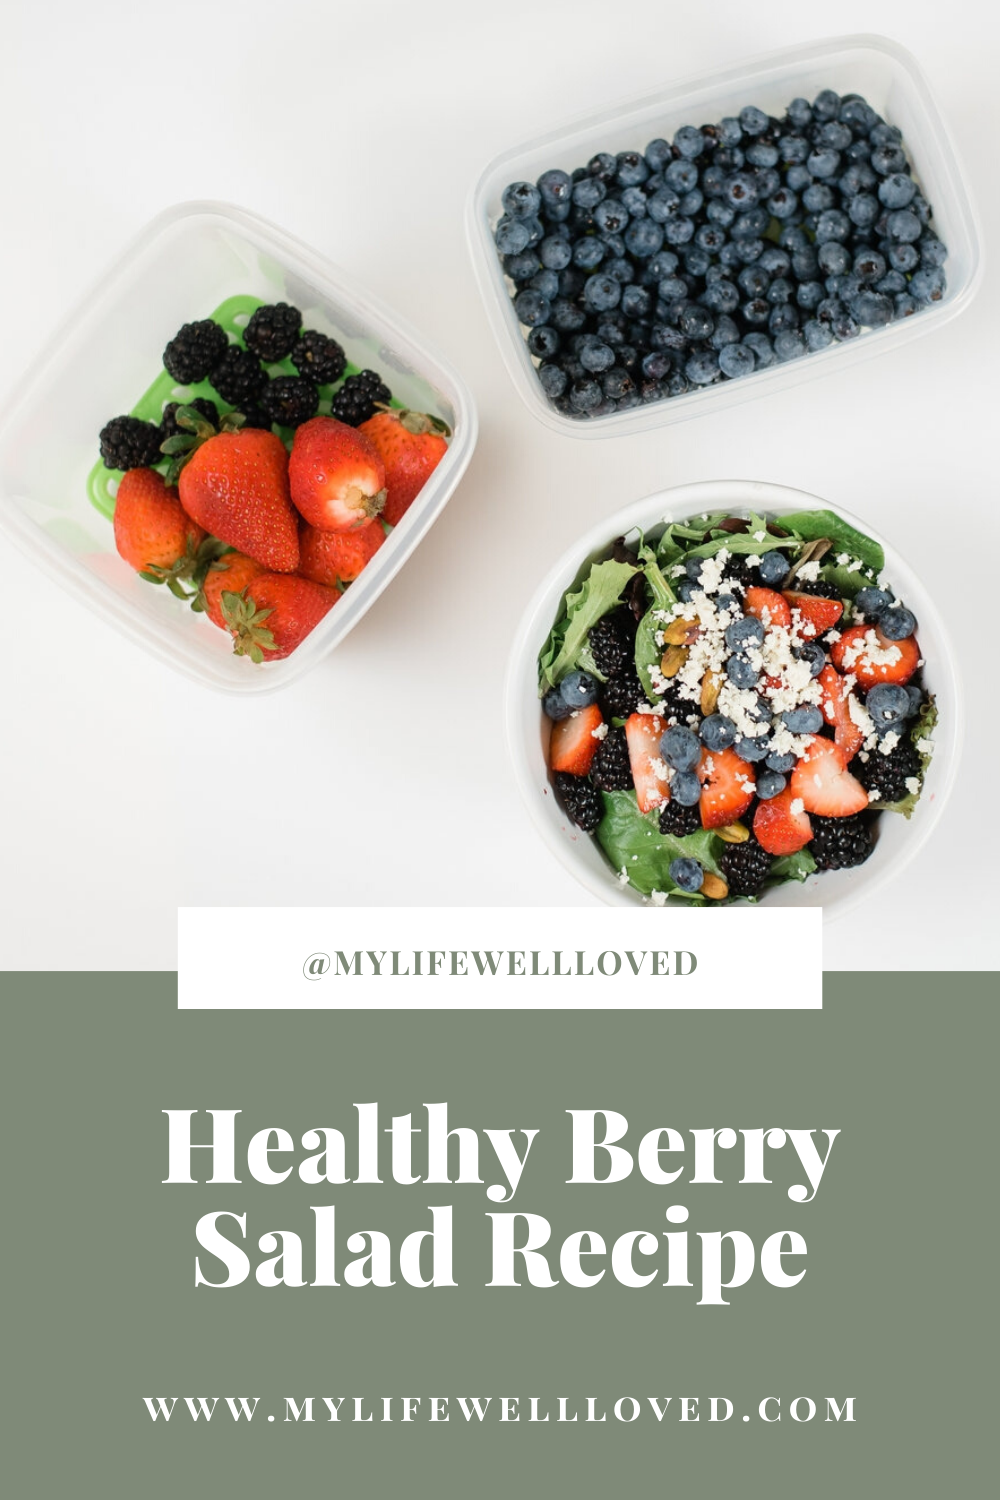 Healthy Berry Salad Recipe by Alabama Health + Food blogger, Heather Brown // My Life Well Loved